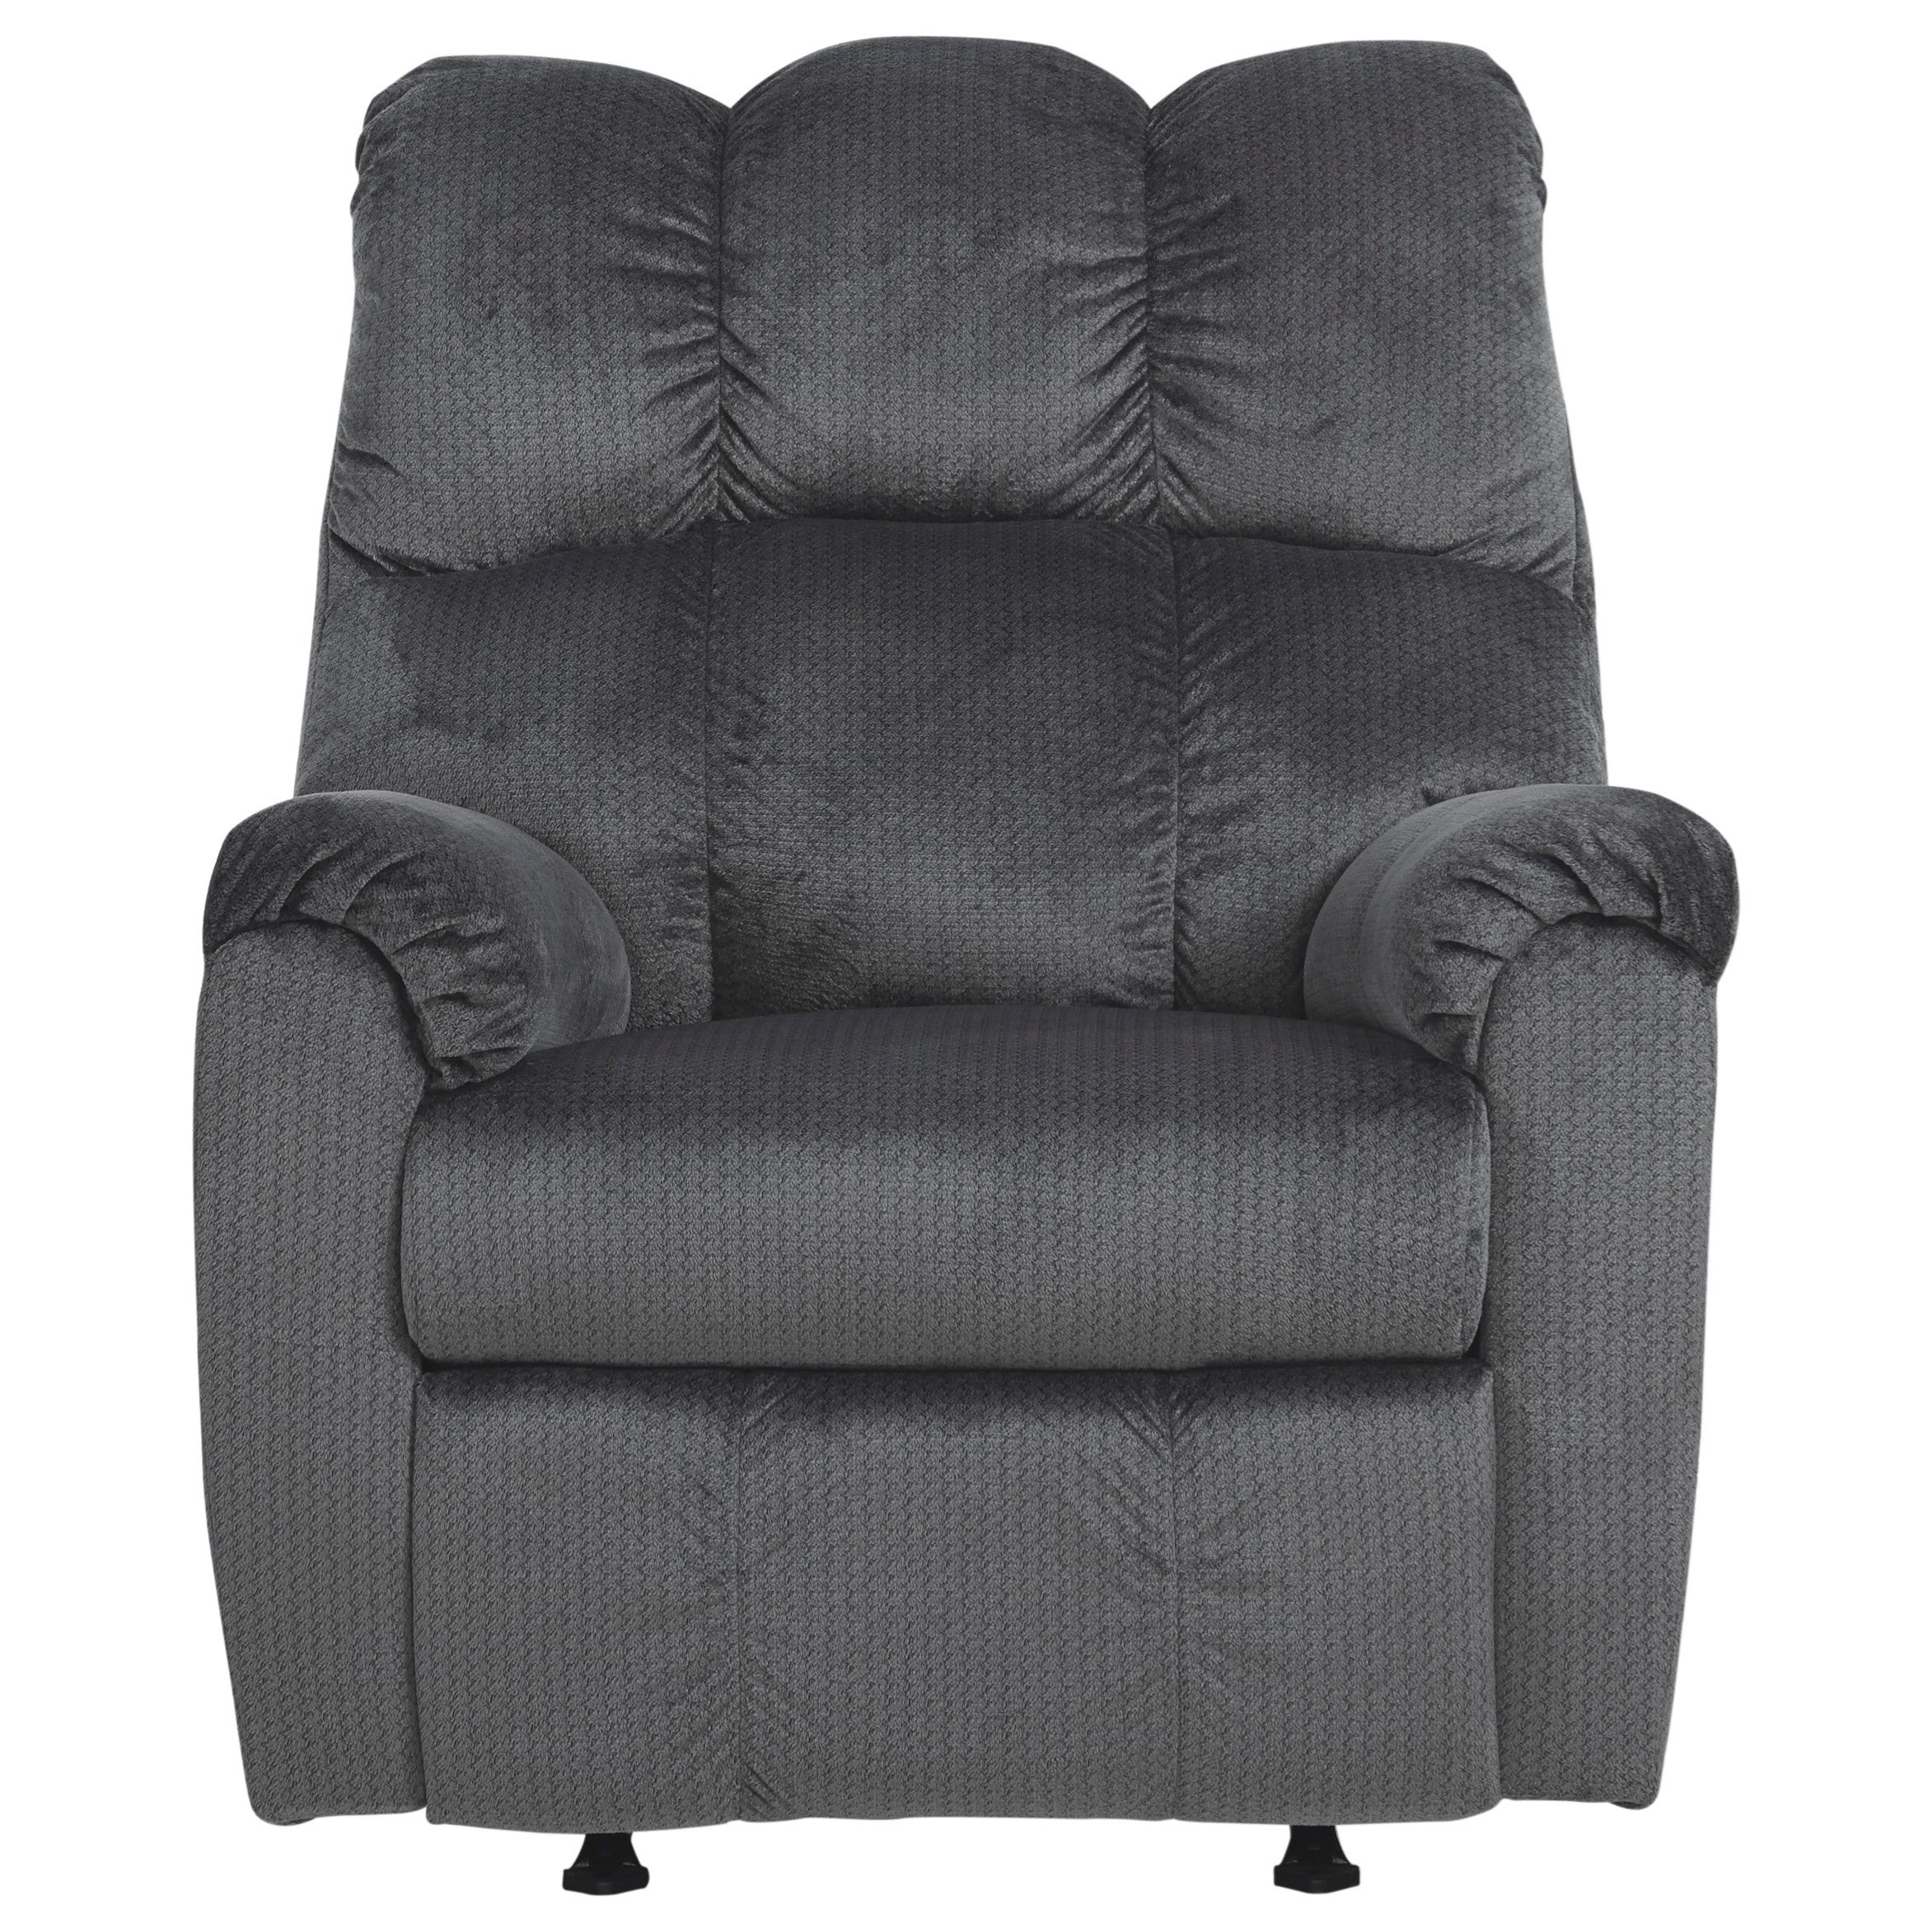 Foxfield Rocker Recliner by Ashley (Signature Design) at Johnny Janosik